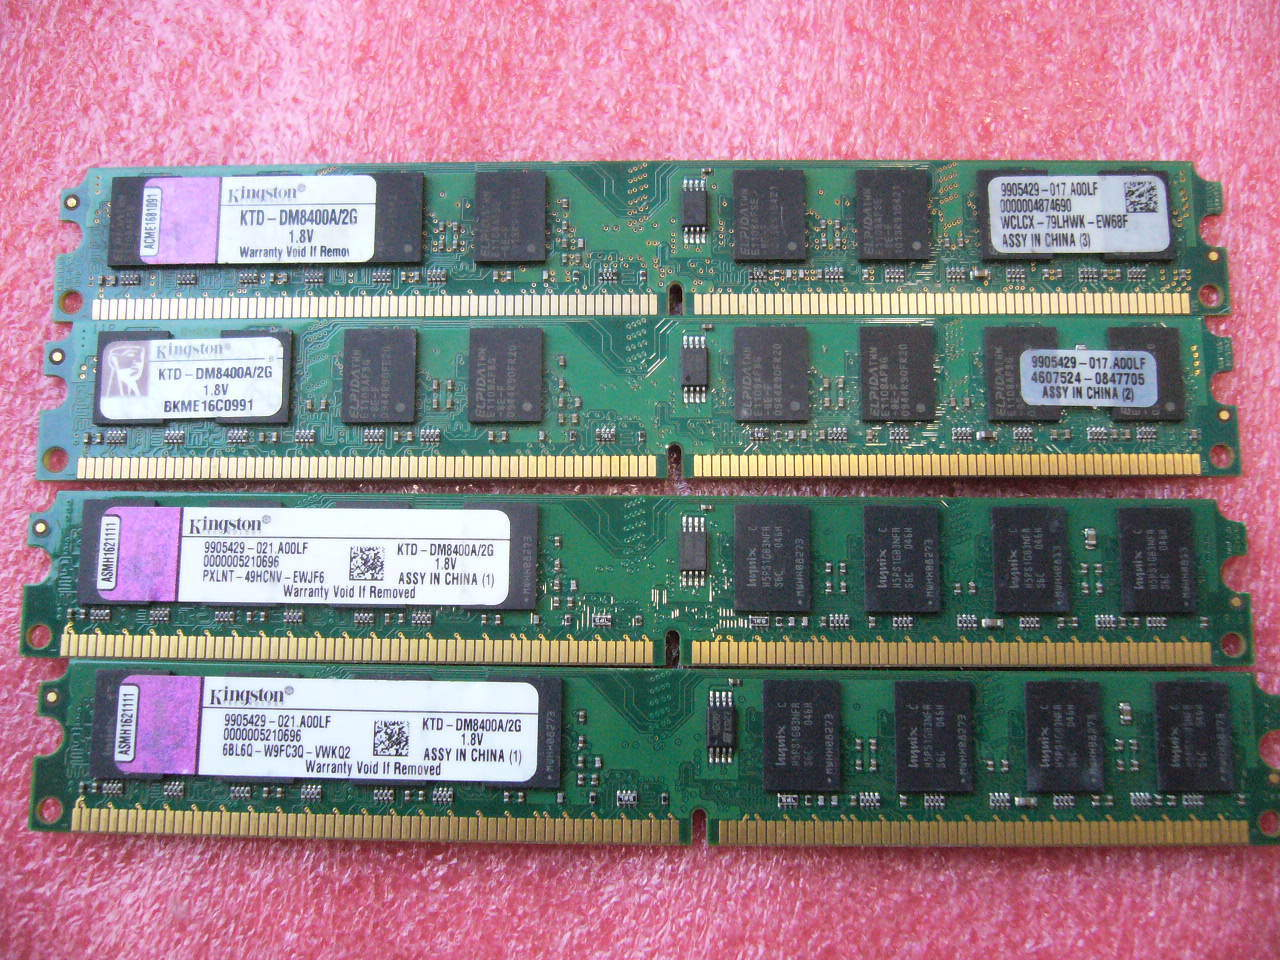 QTY 1x 2GB DDR2 533Mhz non-ECC desktop memory Kingston KTD-DM8400A/2G